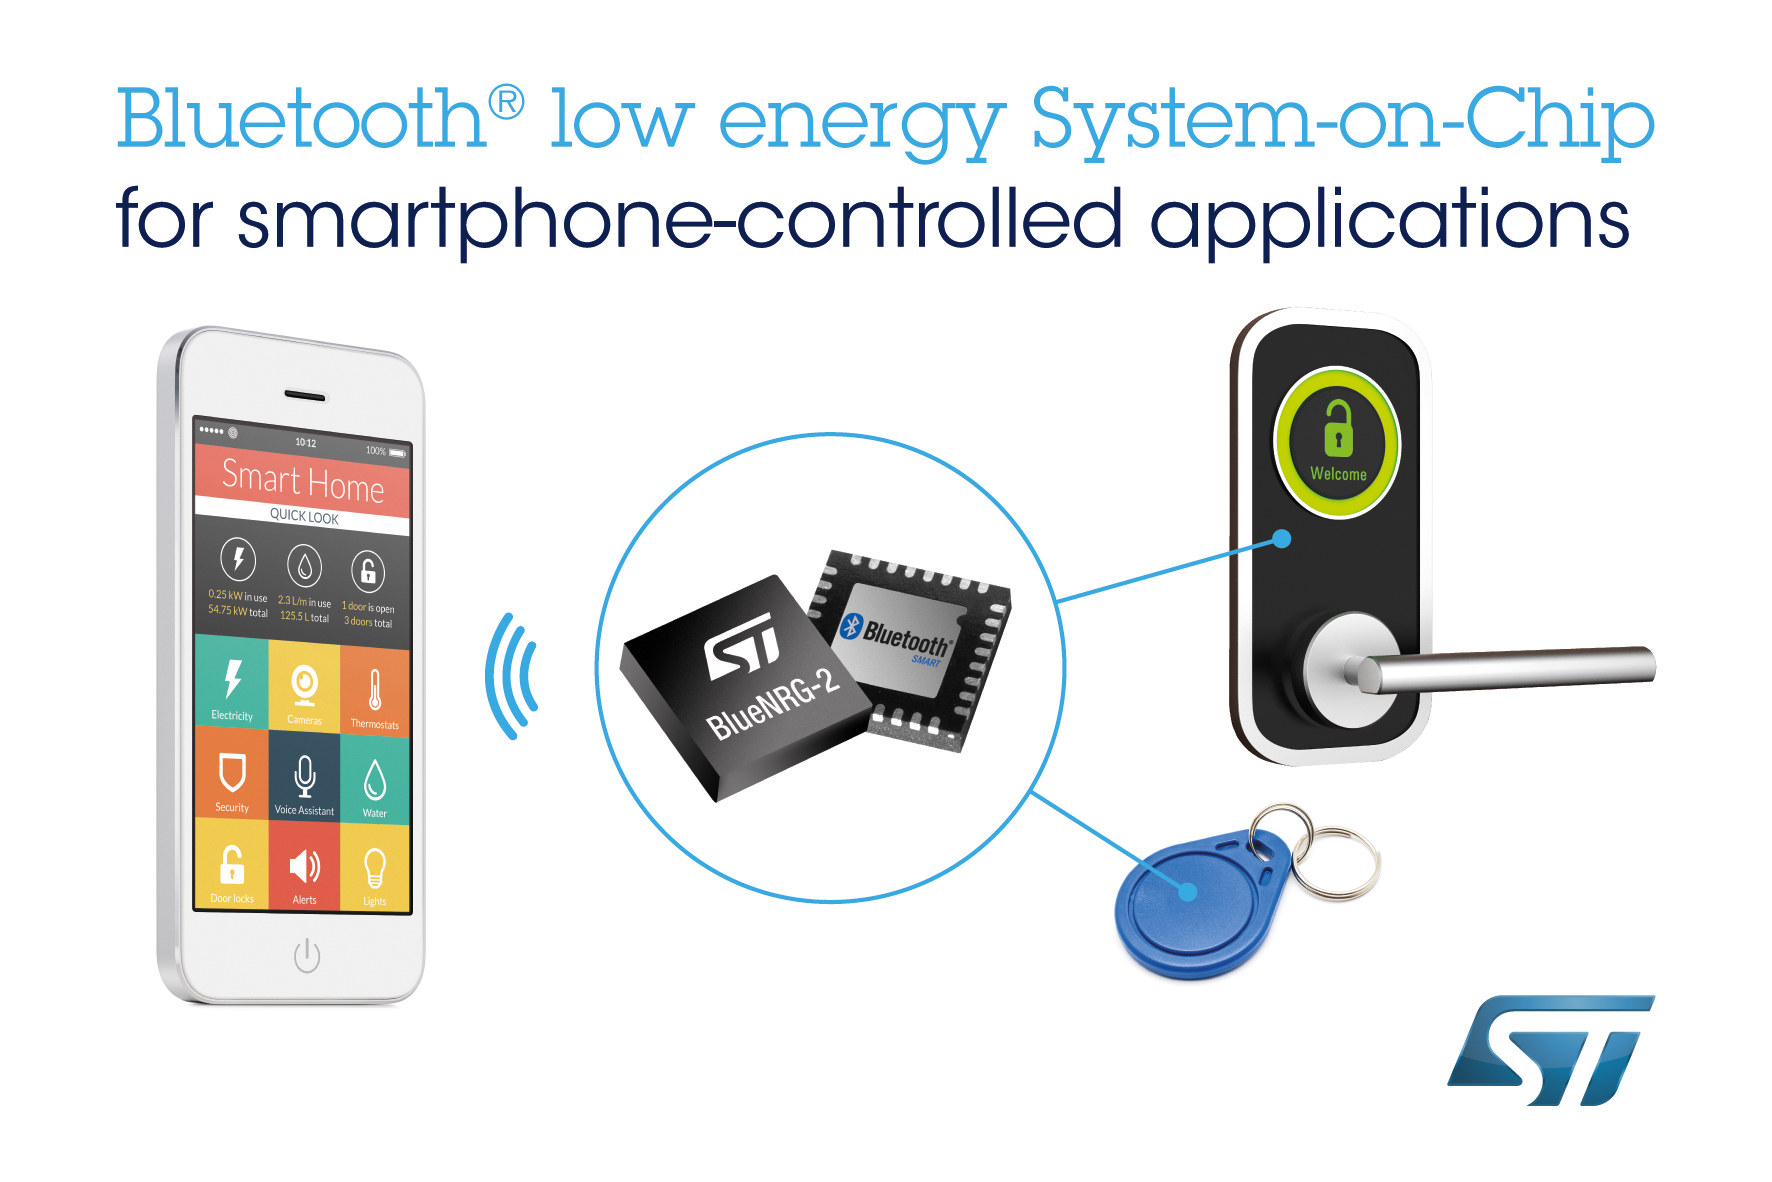 Next Generation Bluetooth Low Energy Chip From Stmicroelectronics Using An Scr Allows The Use Of Lowvoltage Electronics To Control Boosts Boom Connected Smart Things